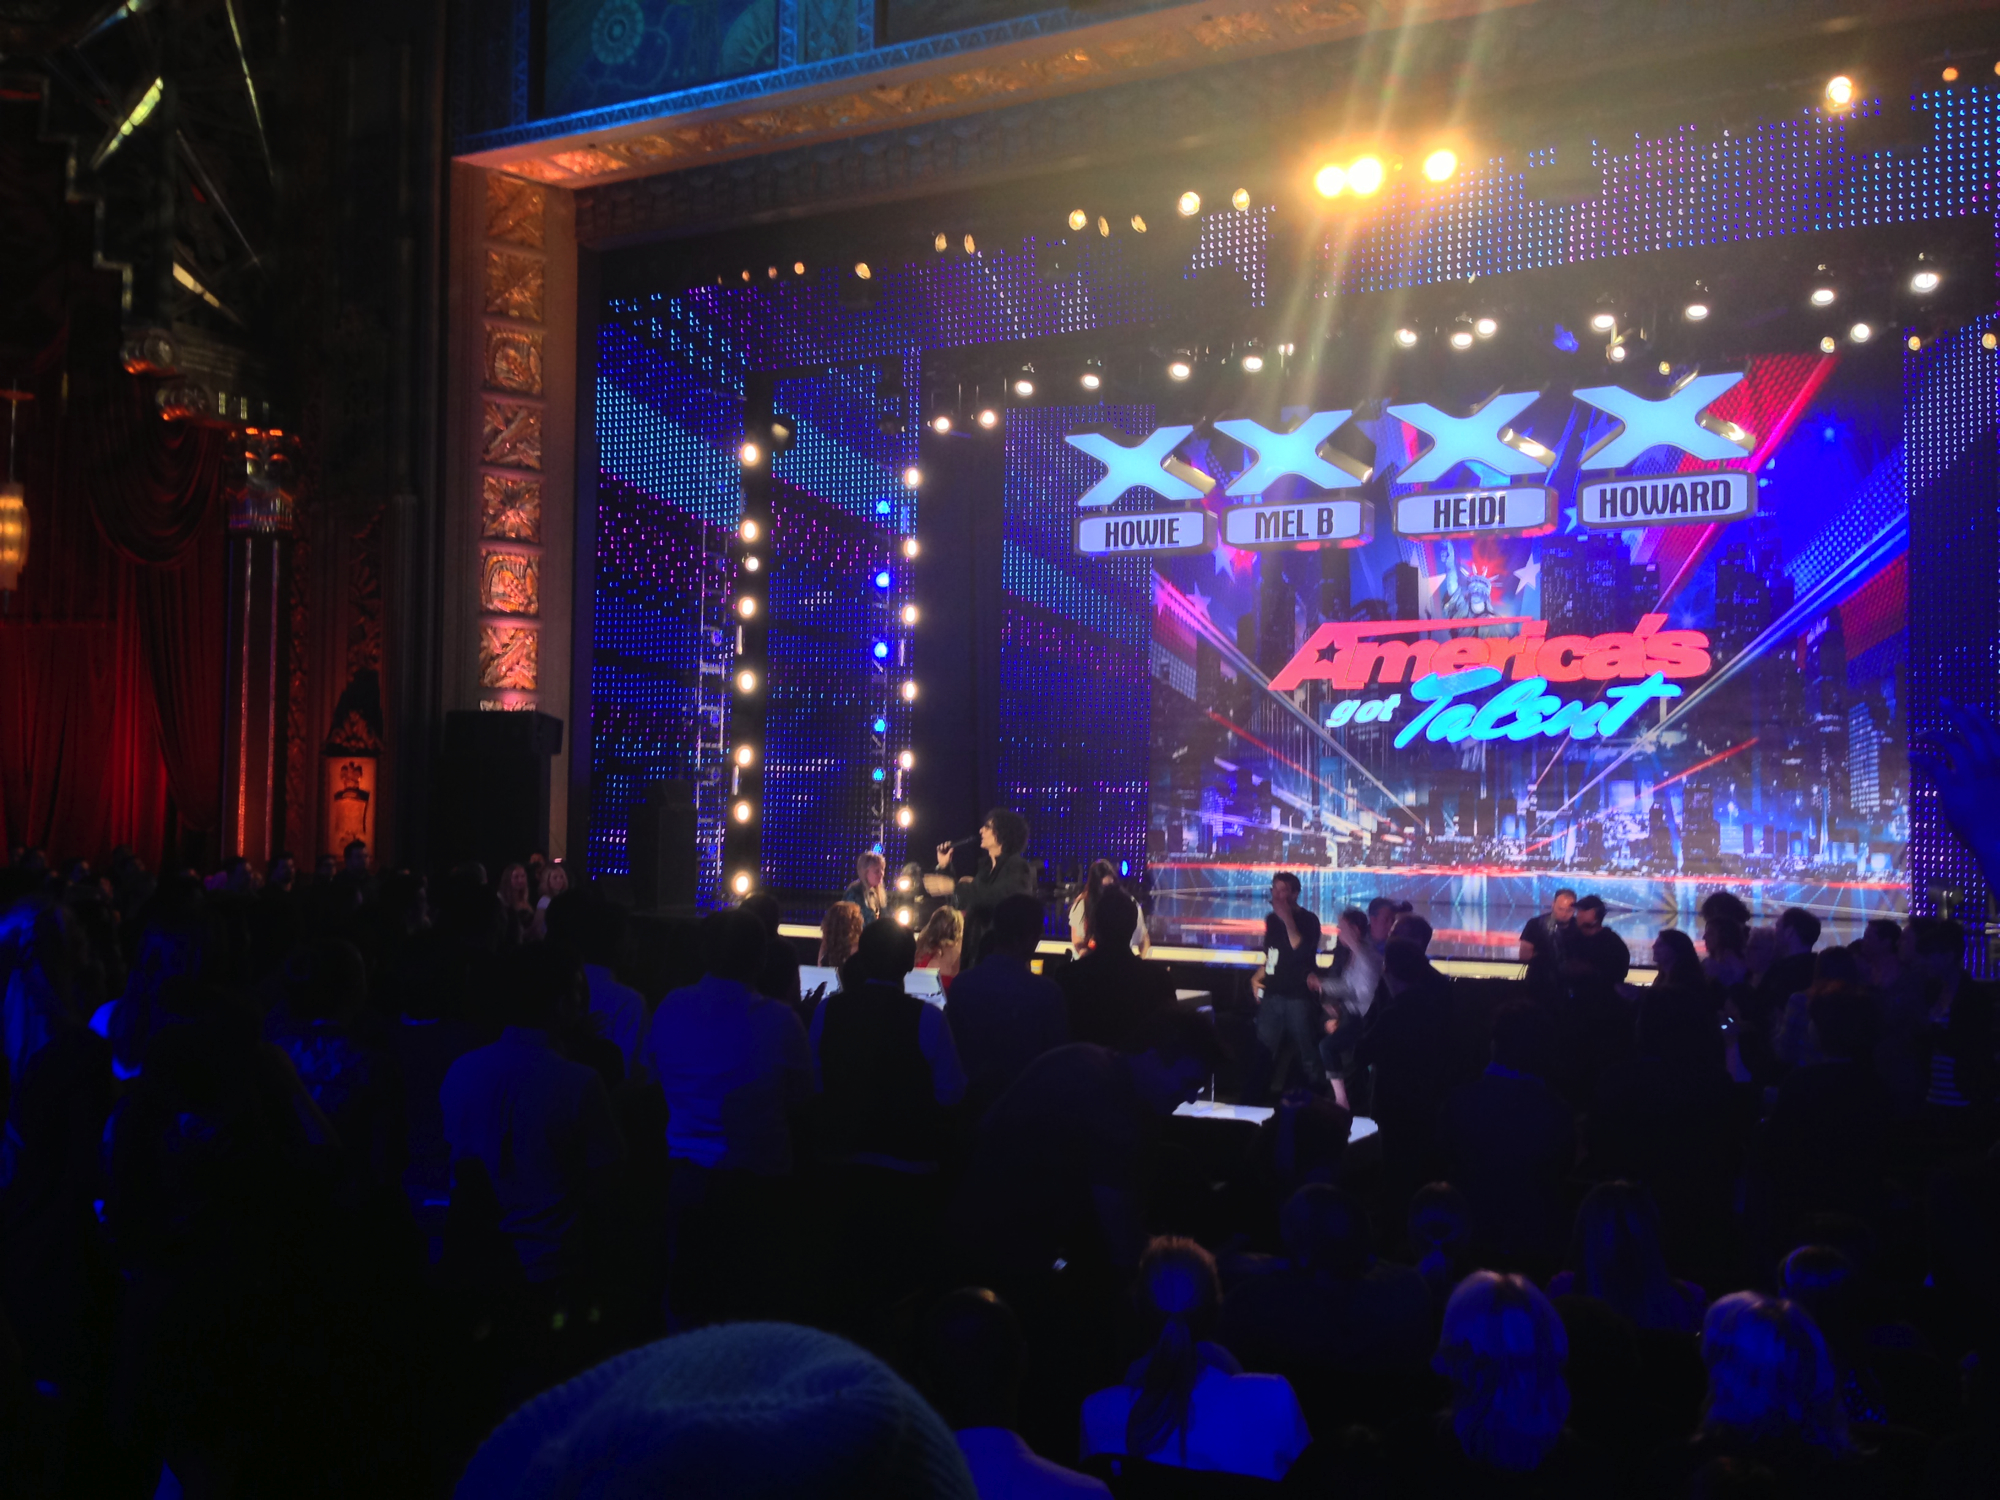 """Howie Mandel """"Catches"""" Comedian Stealing Another Comic's Material During 'America's Got Talent' Taping? – /Film"""